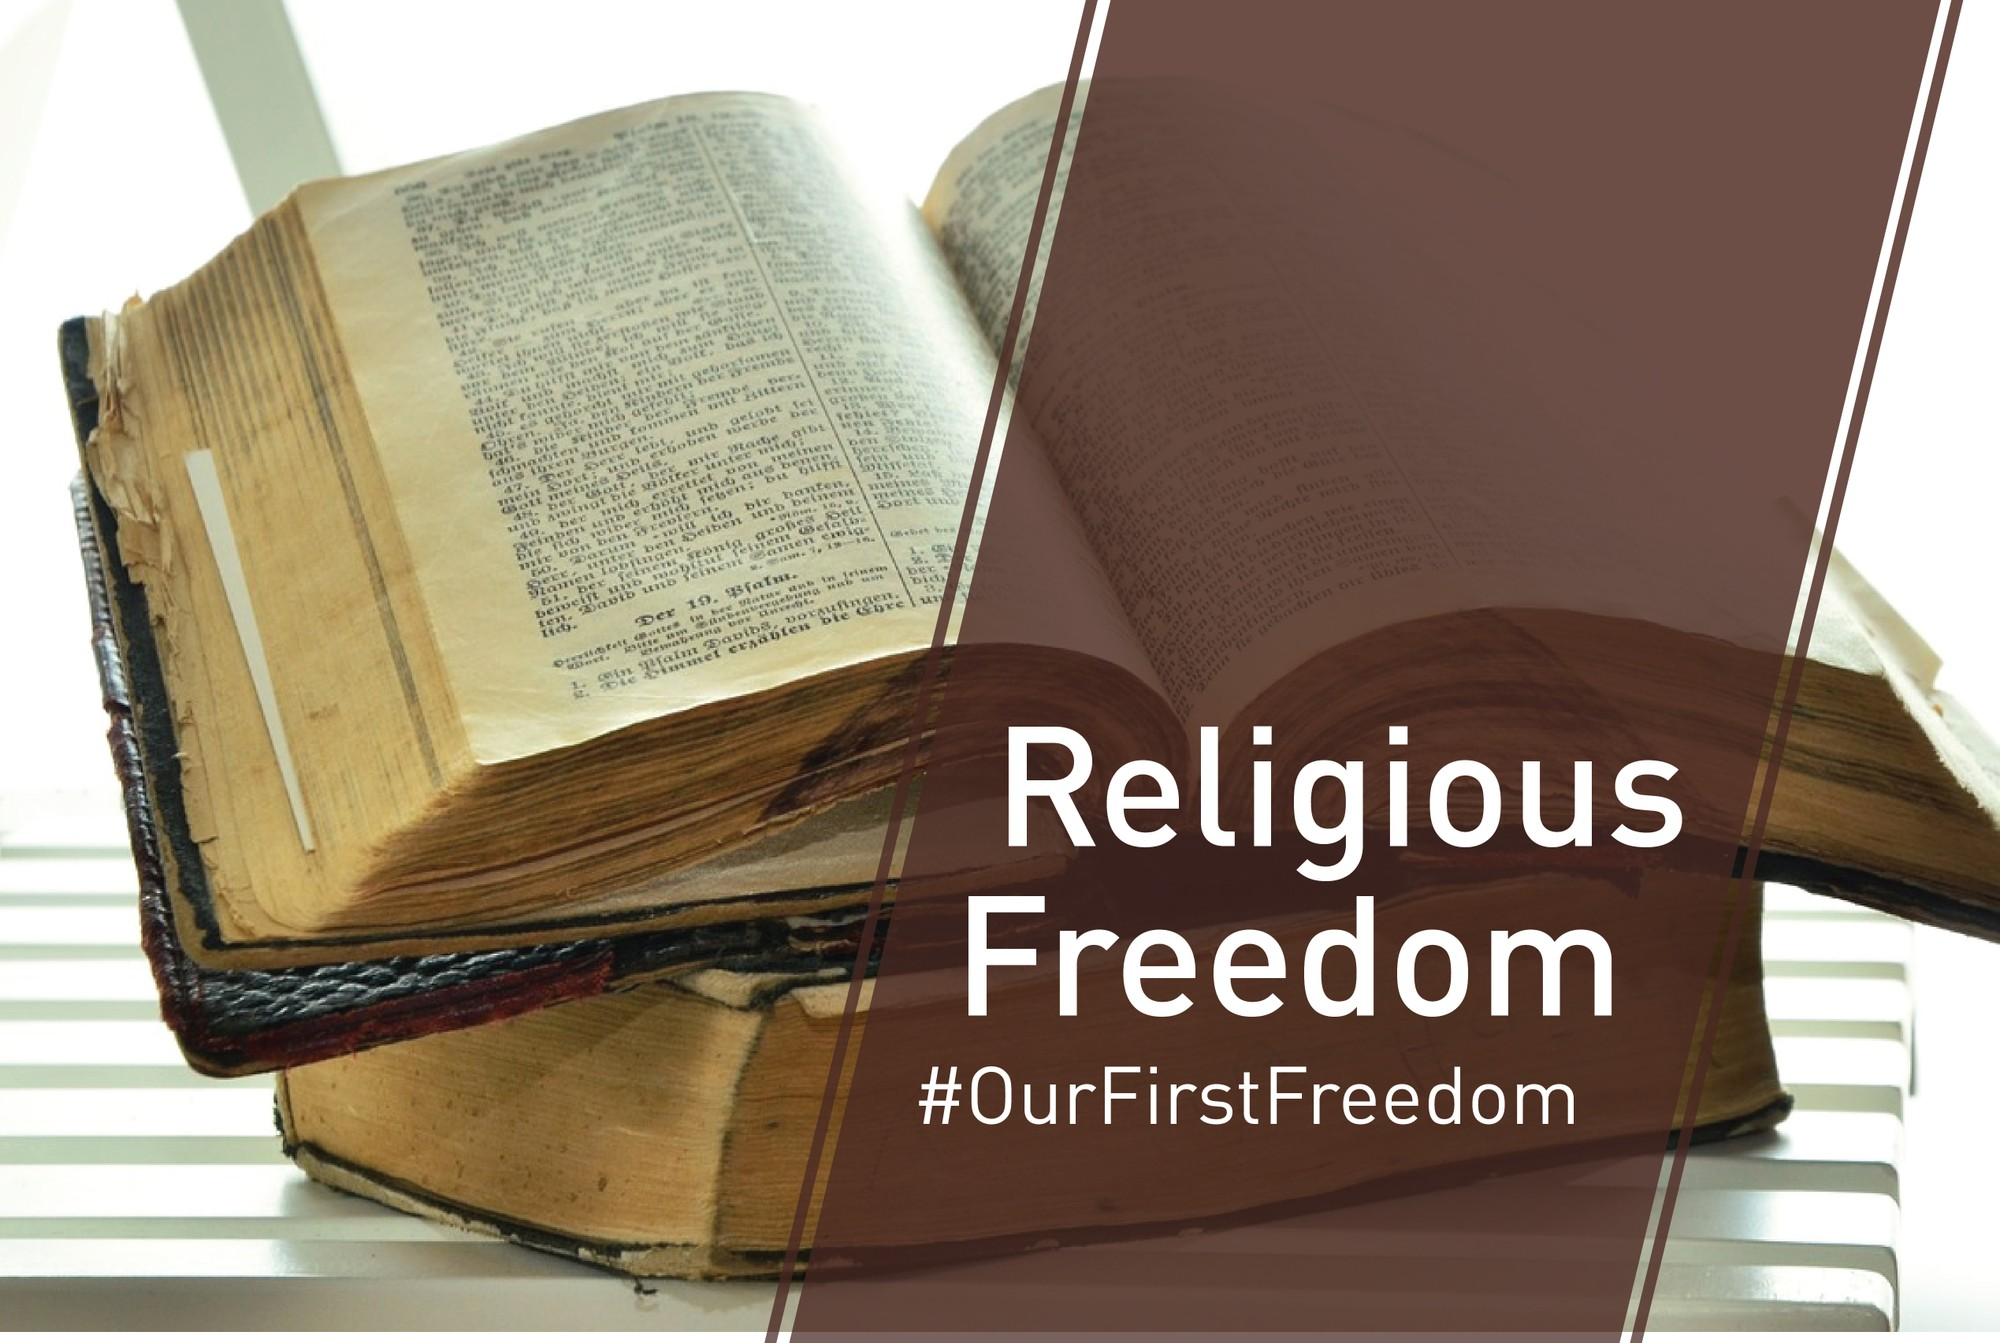 Study concludes religious freedom means peace